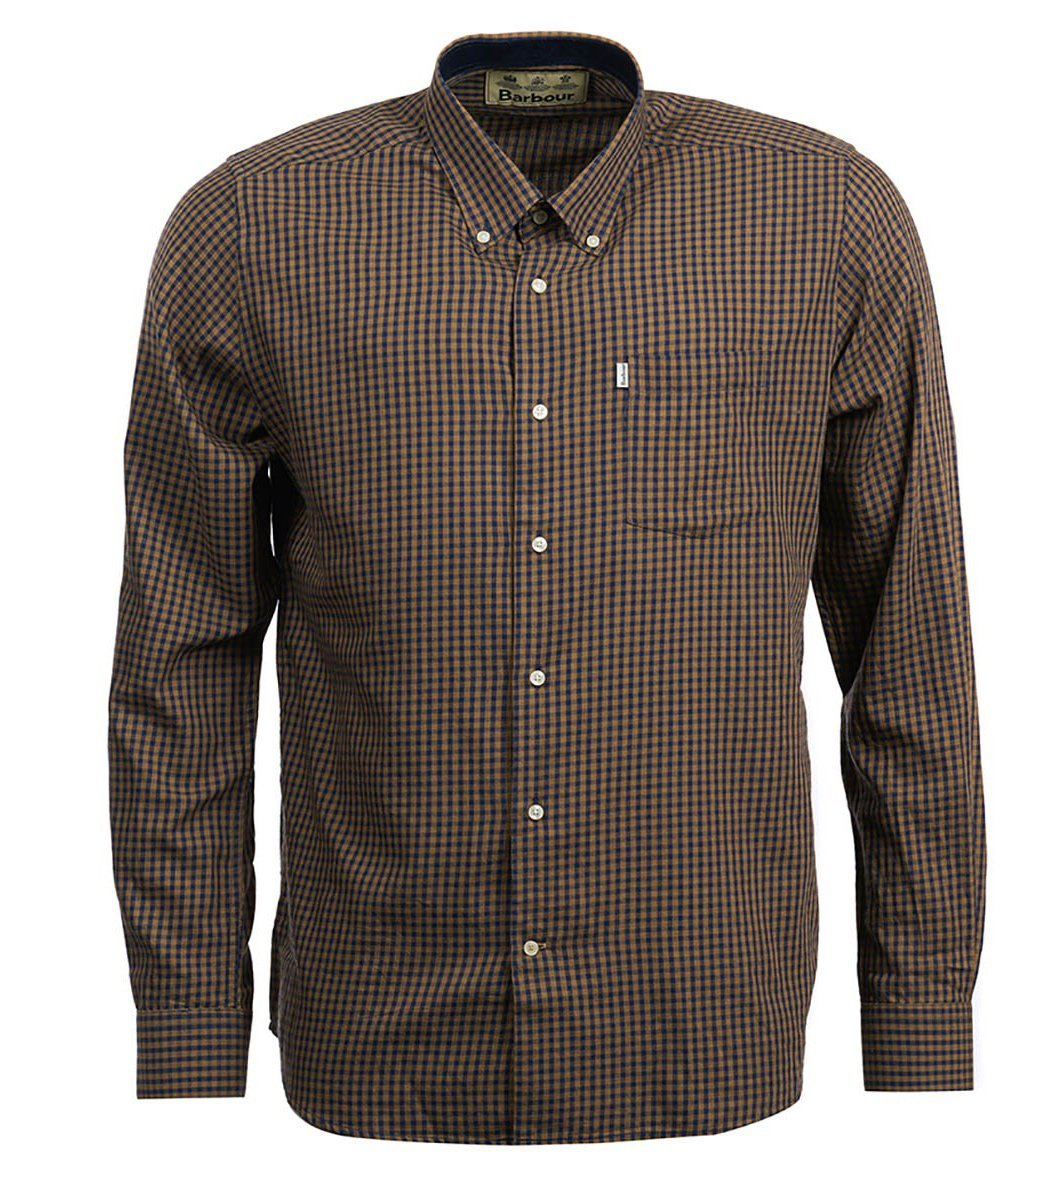 Barbour MEN - SHIRTS - BUTTON DOWNS Barbour, Swinley Wool Mix Tailored Shirt, Sandstone